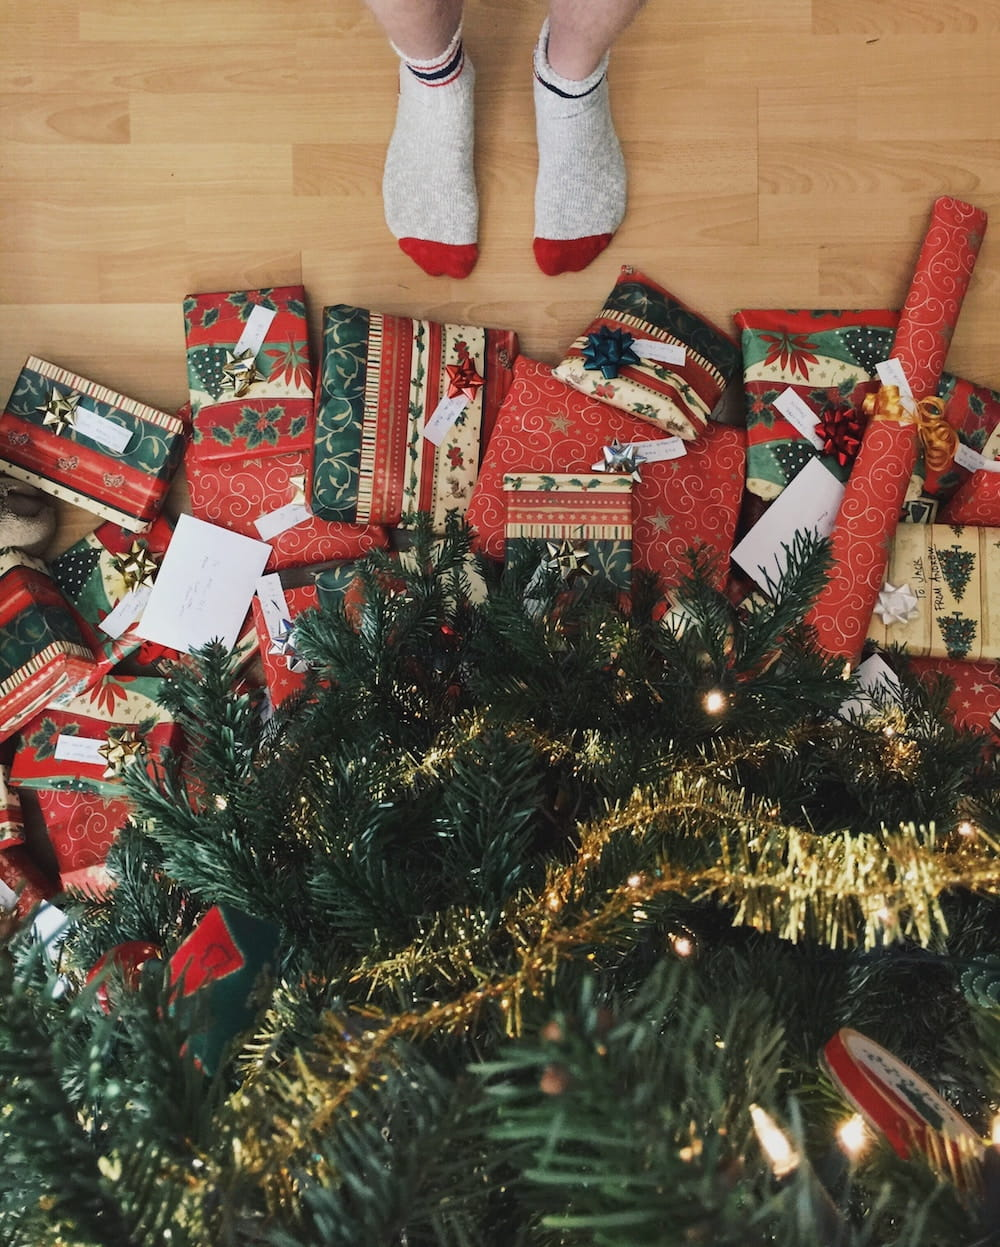 The Psychology of Christmas Gifts